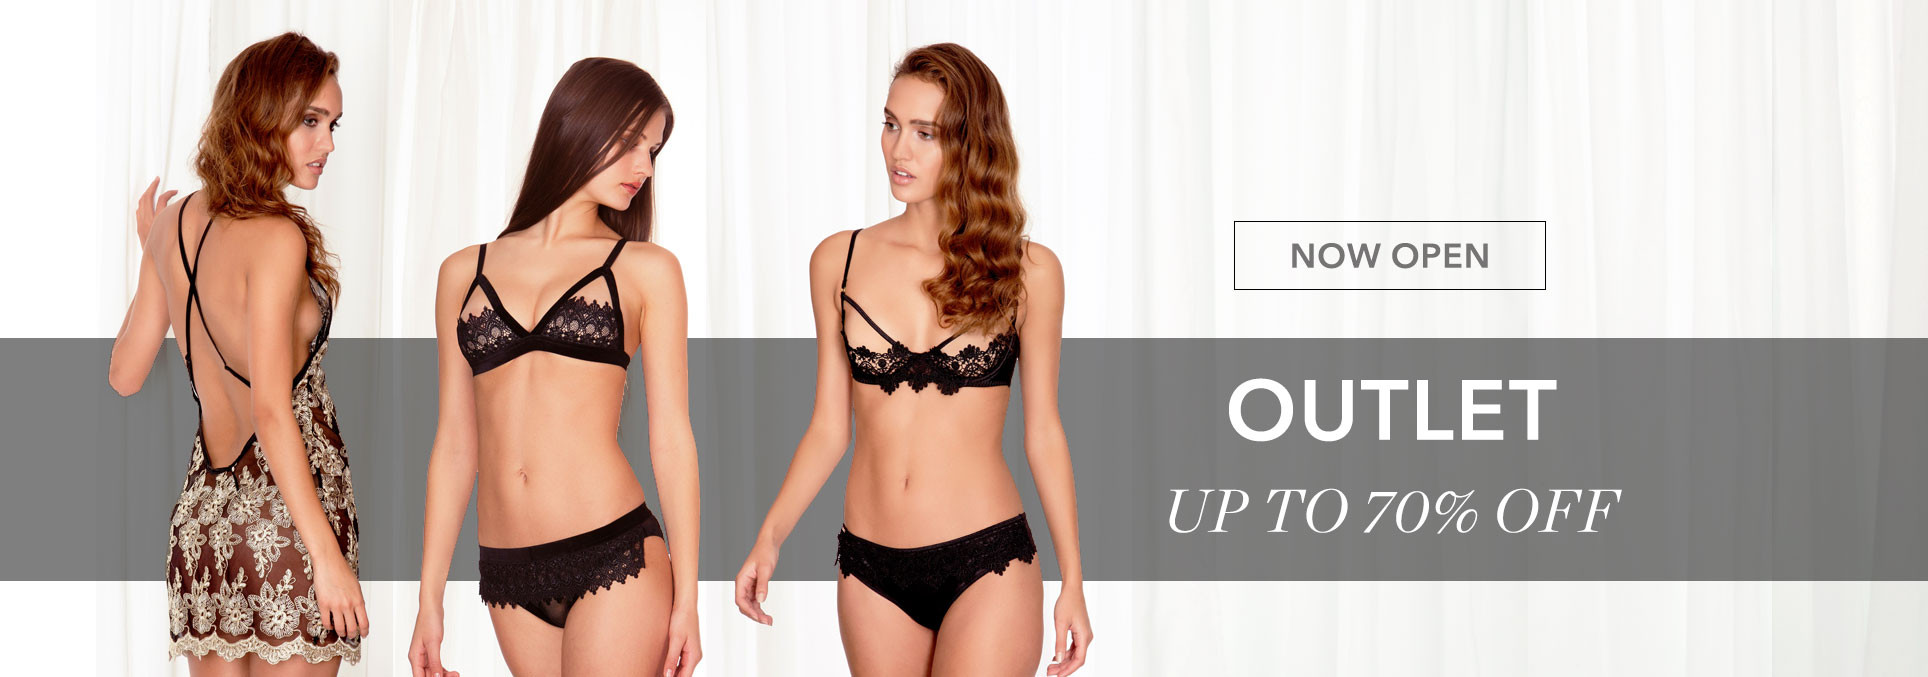 Bluebella: Sale up to 70% off outlet